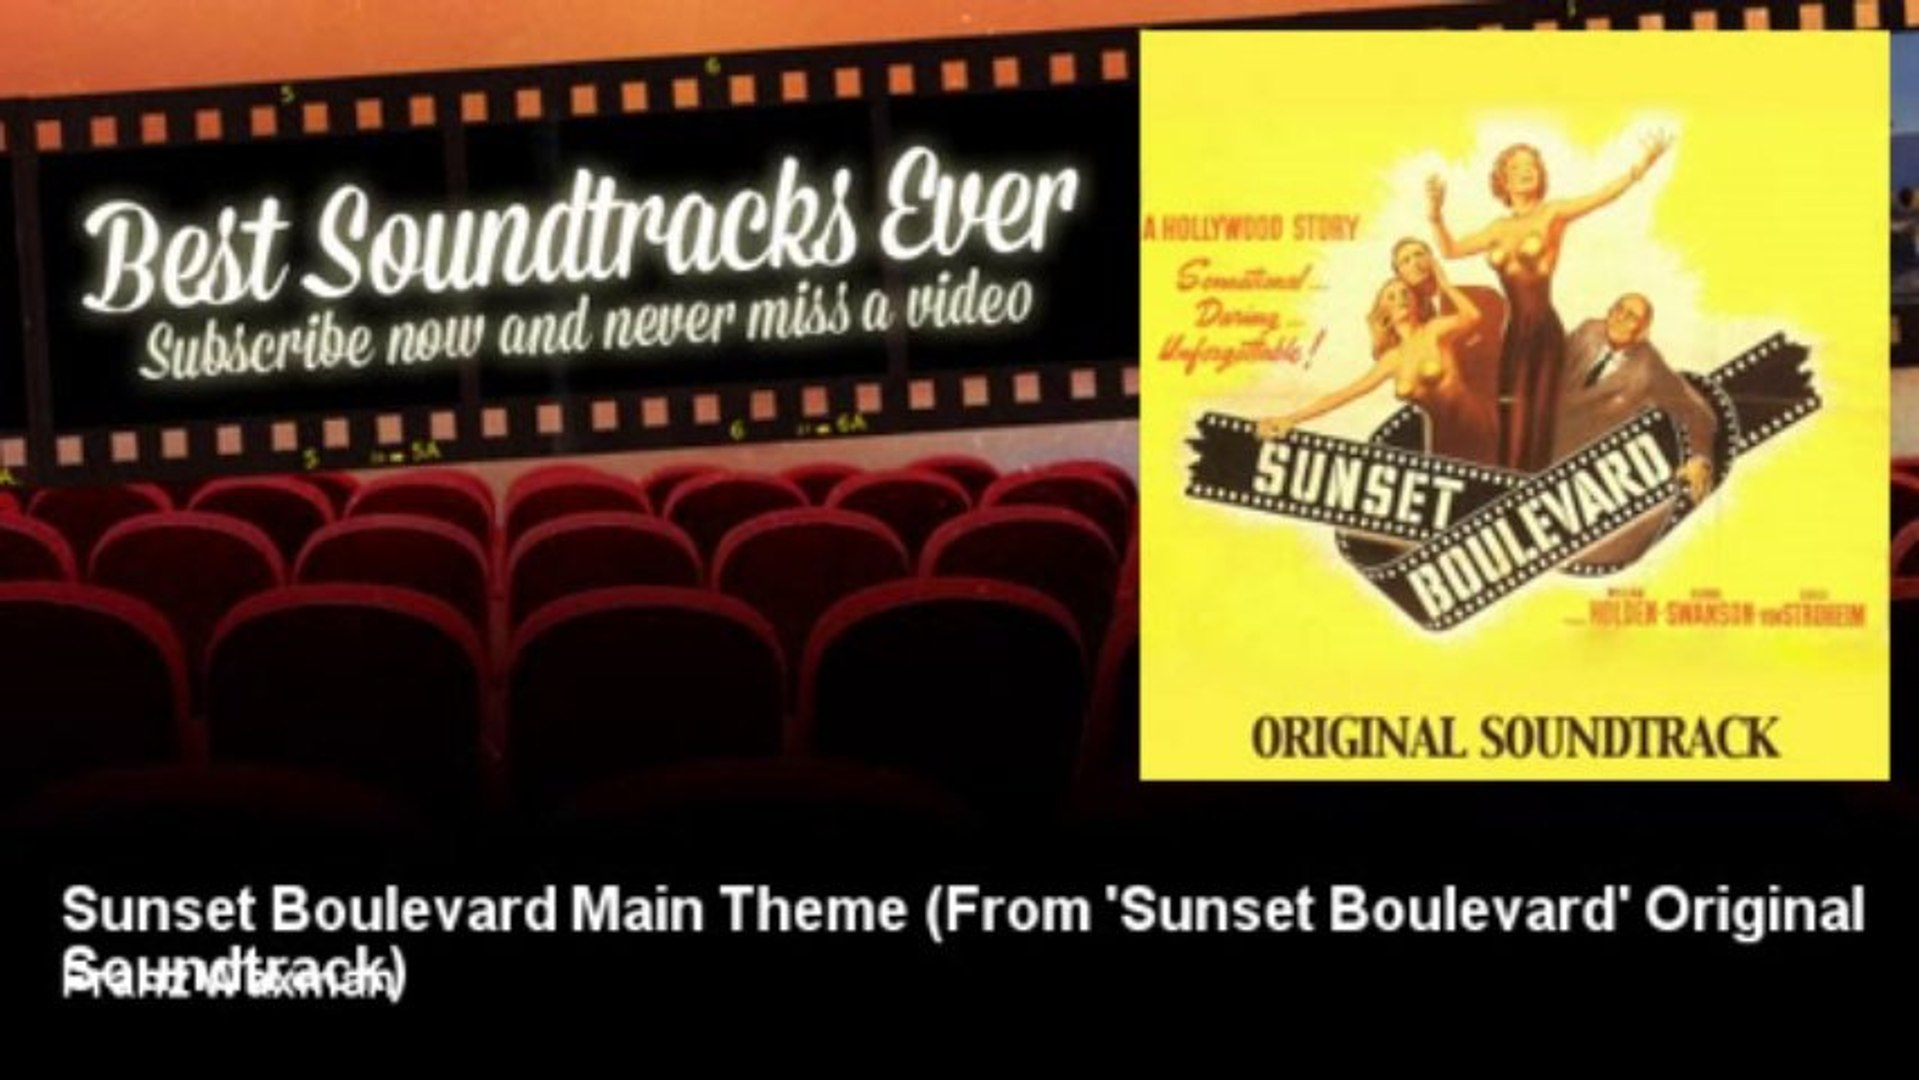 Franz Waxman - Sunset Boulevard Main Theme - From 'Sunset Boulevard' Original Soundtrack